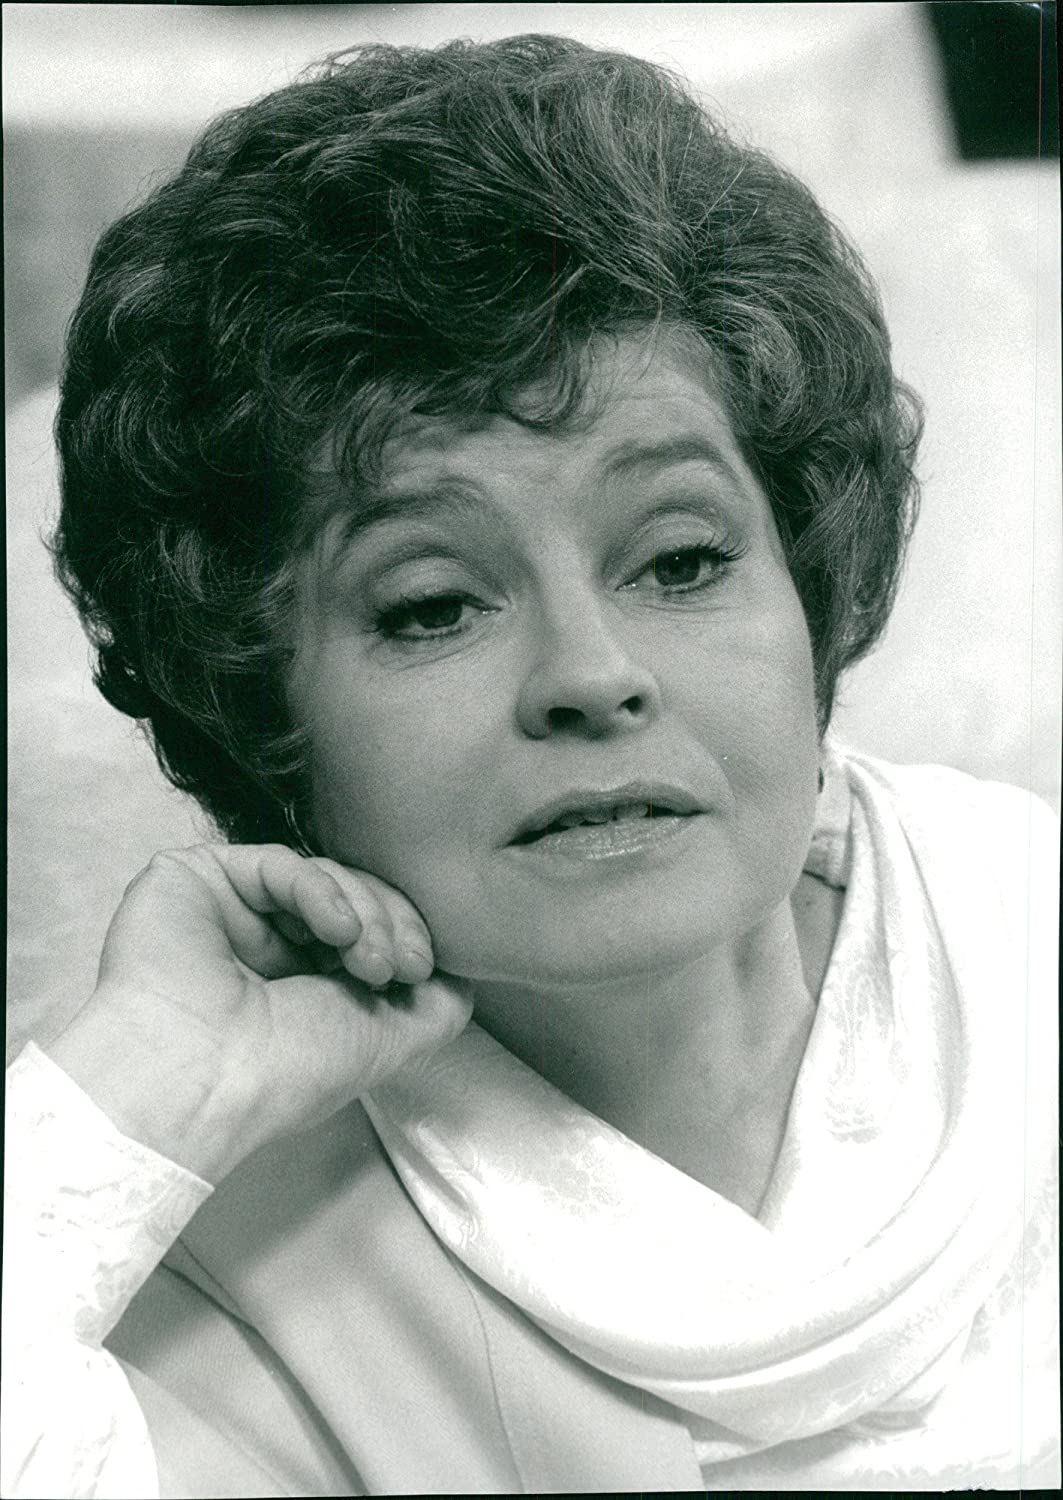 pics Prunella Scales (born 1932)